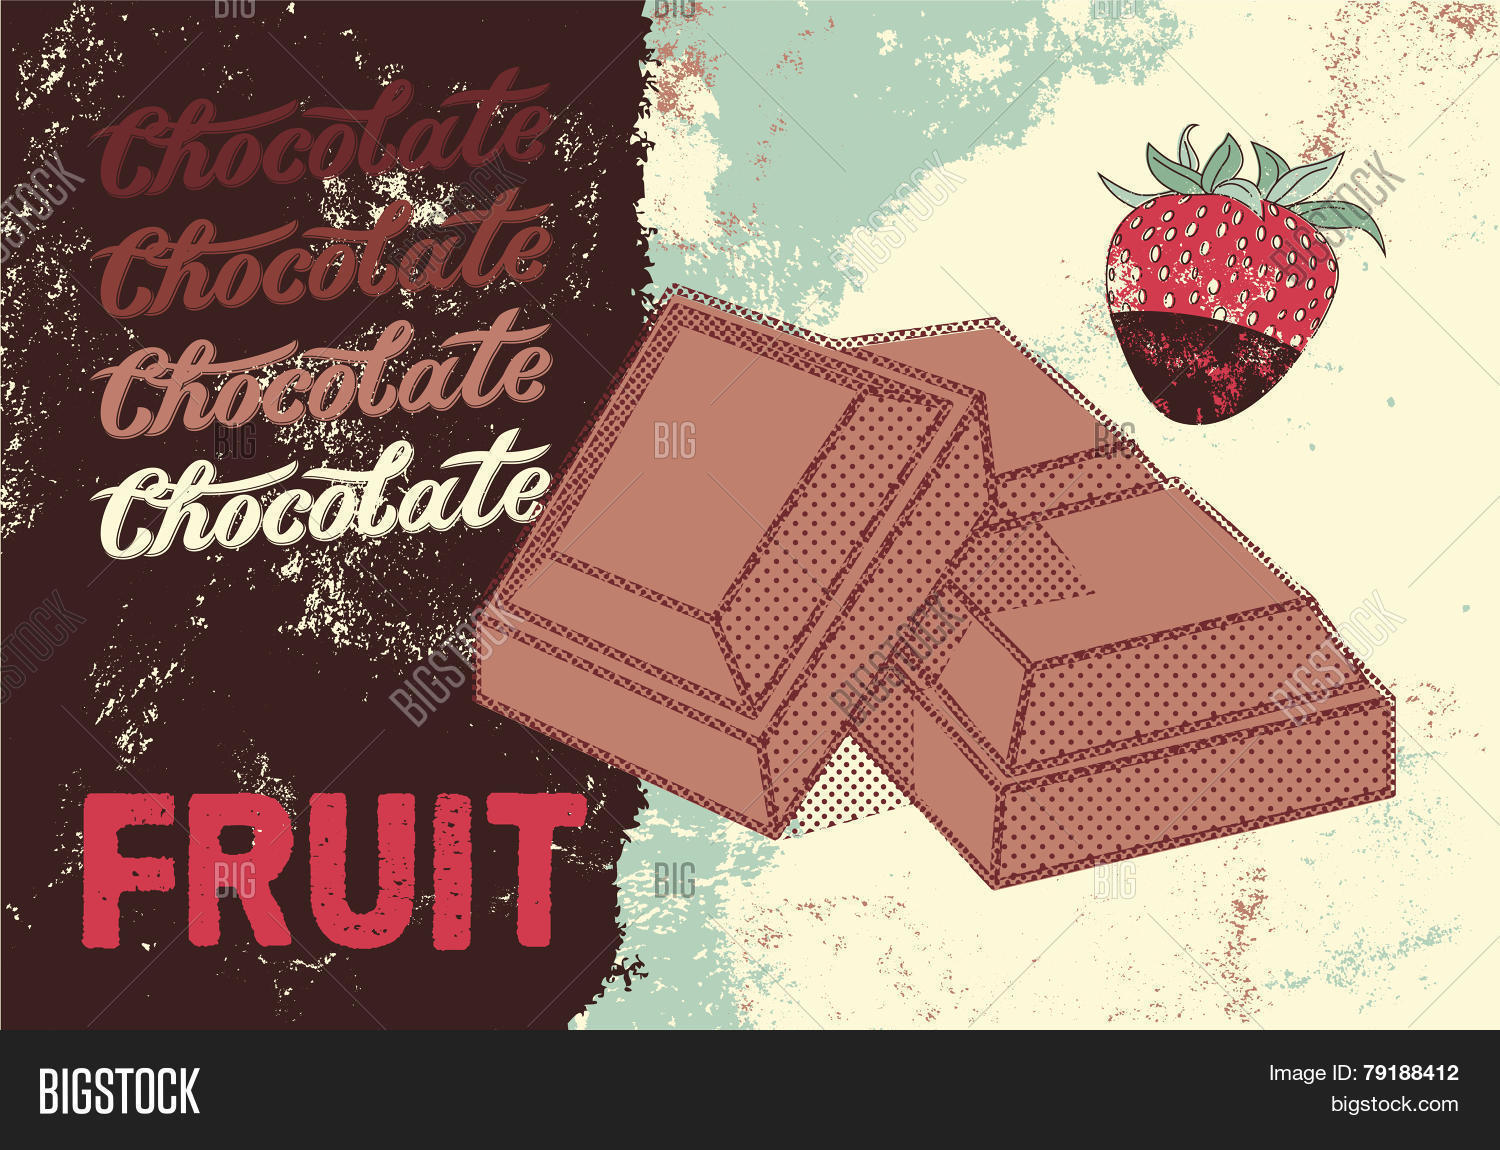 Vintage Chocolate packaging design. Fruit chocolate poster. Vector ...